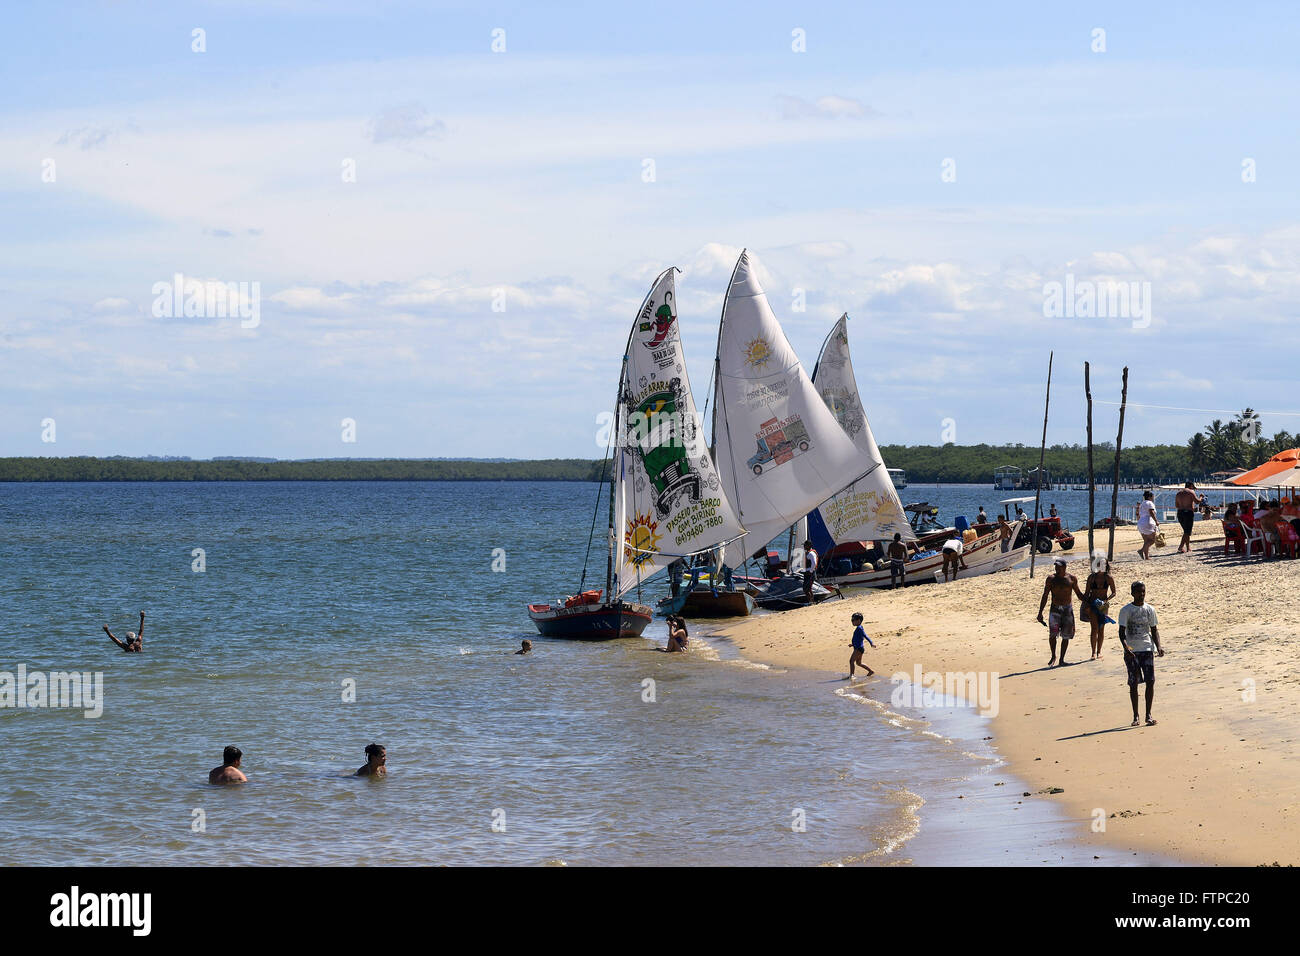 Sailboats and swimmers in Barra do Cunhau - Stock Image